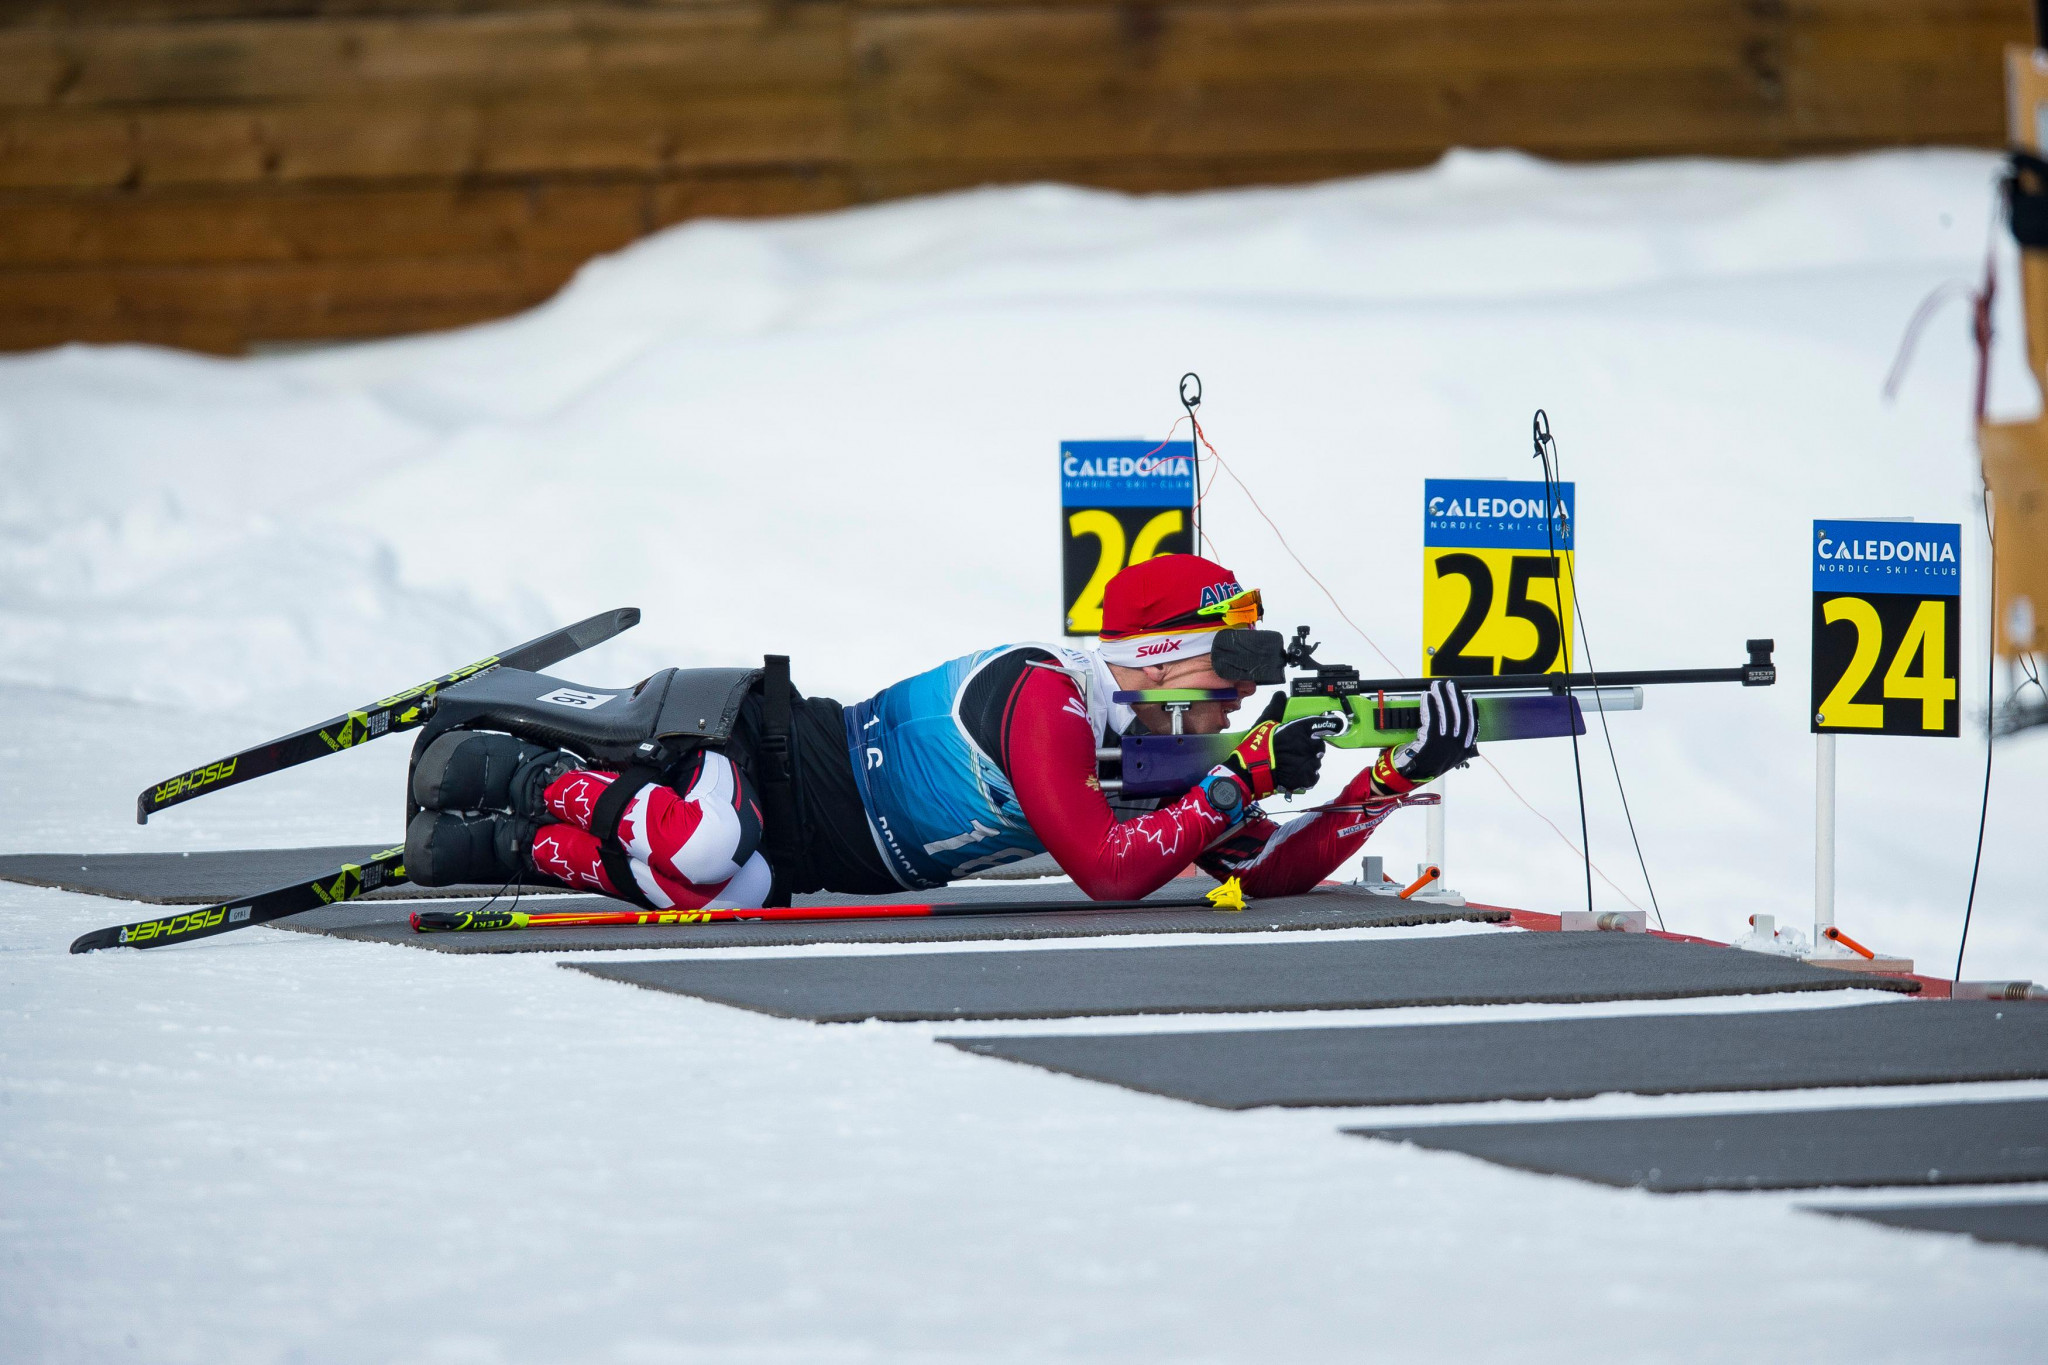 Kadykov appointed race director for 2019-2020 World Para Nordic Skiing season